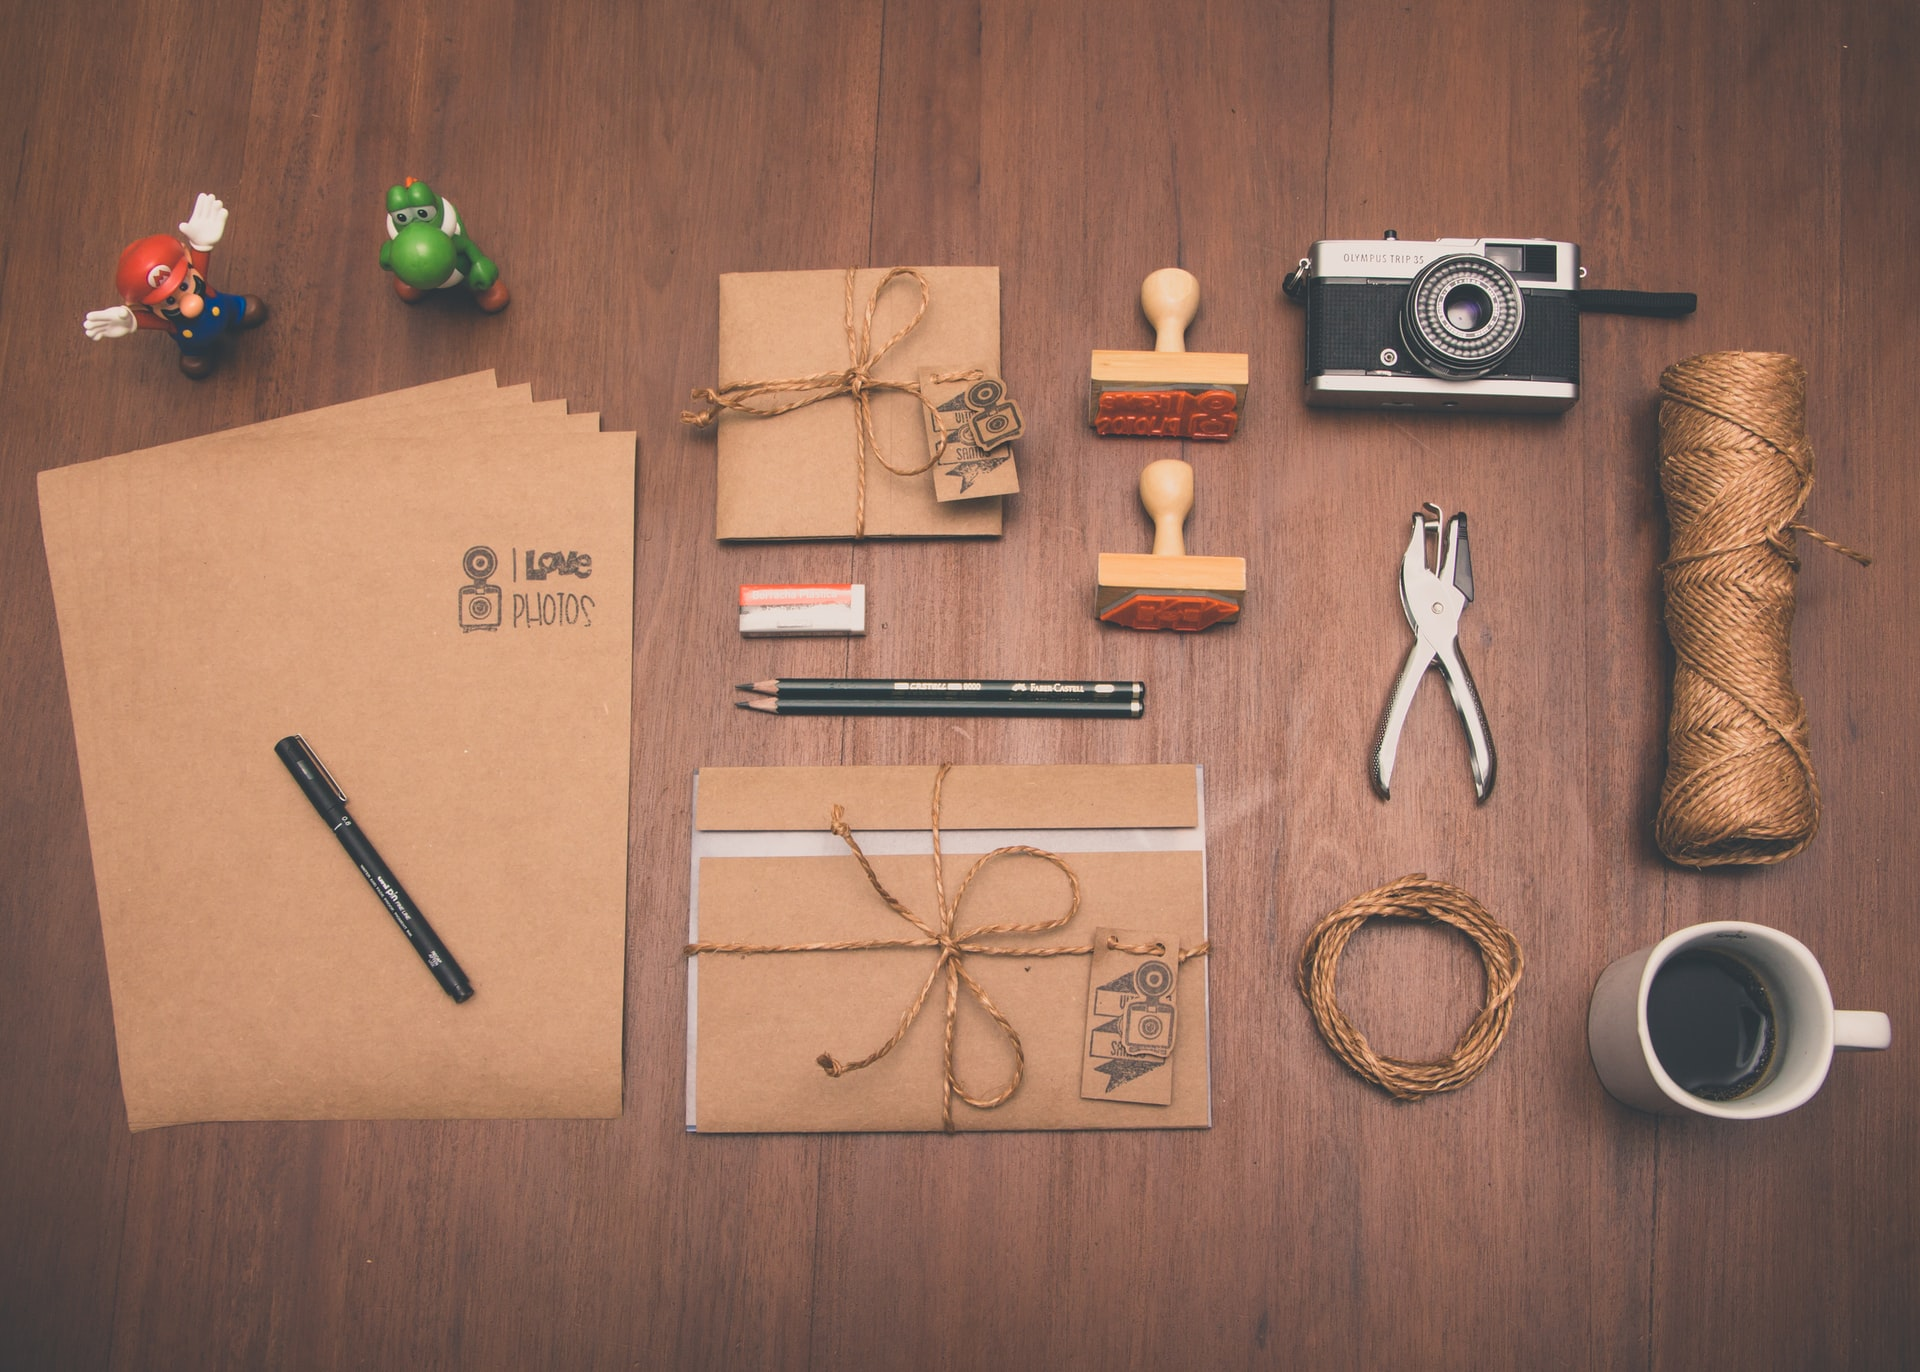 Brown papers, file, and camera lying on a wooden table